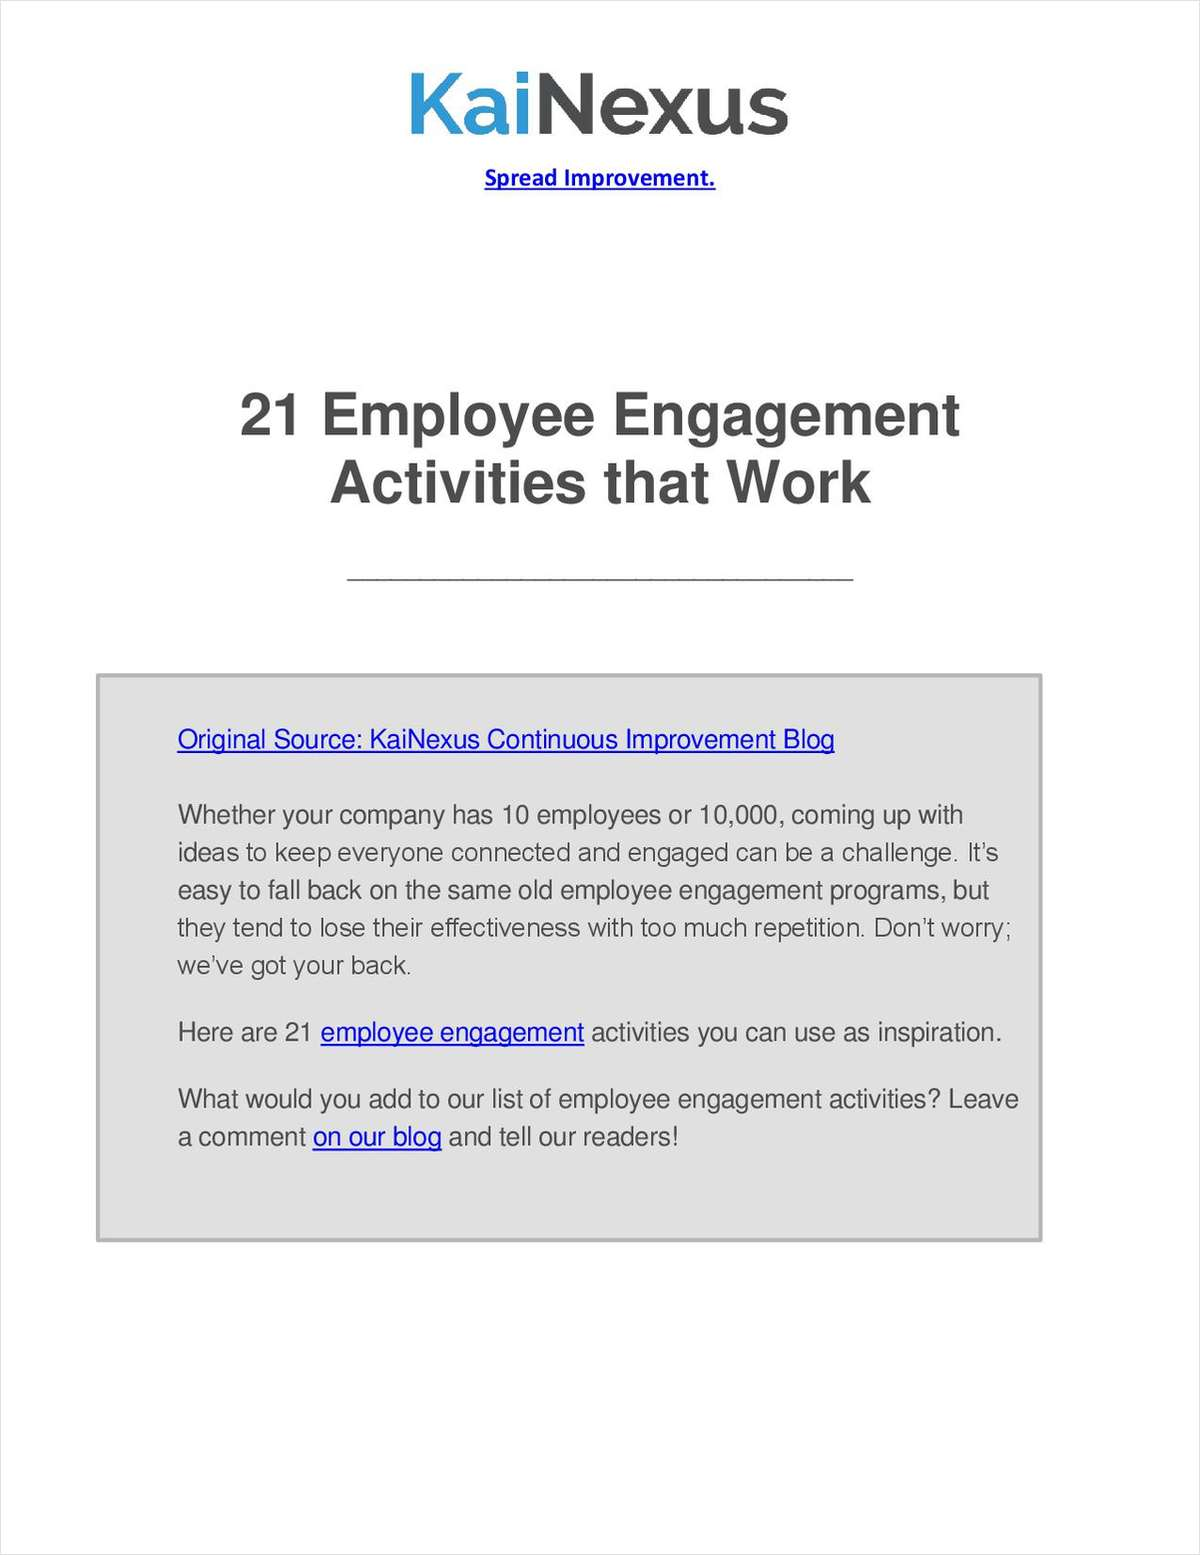 21 Employee Engagement Activities that Work